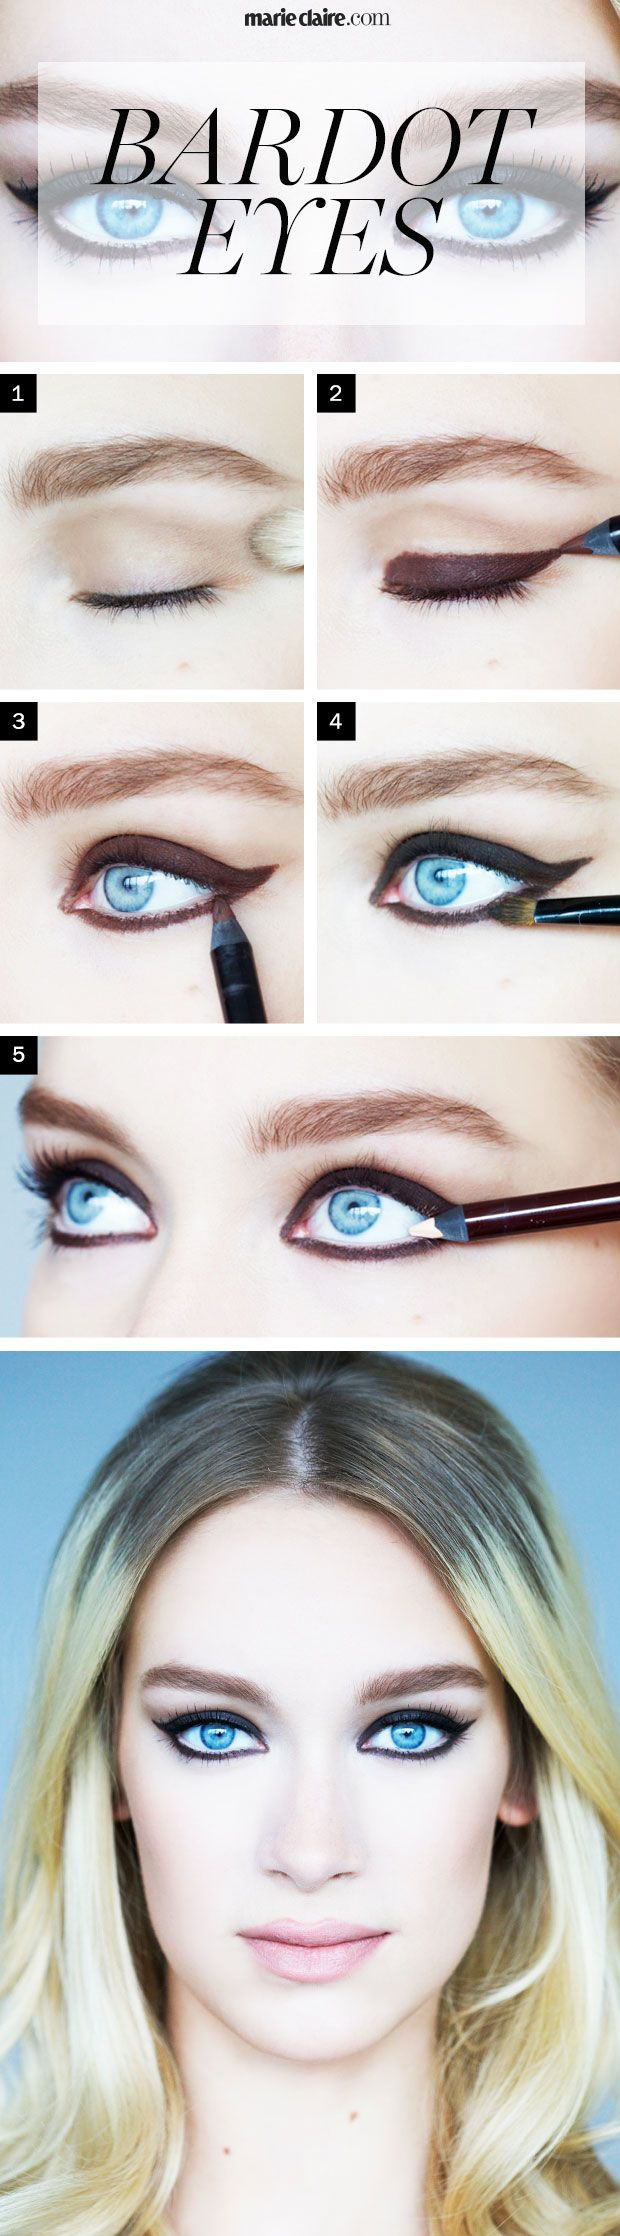 DIY Bardot Eyes makeup